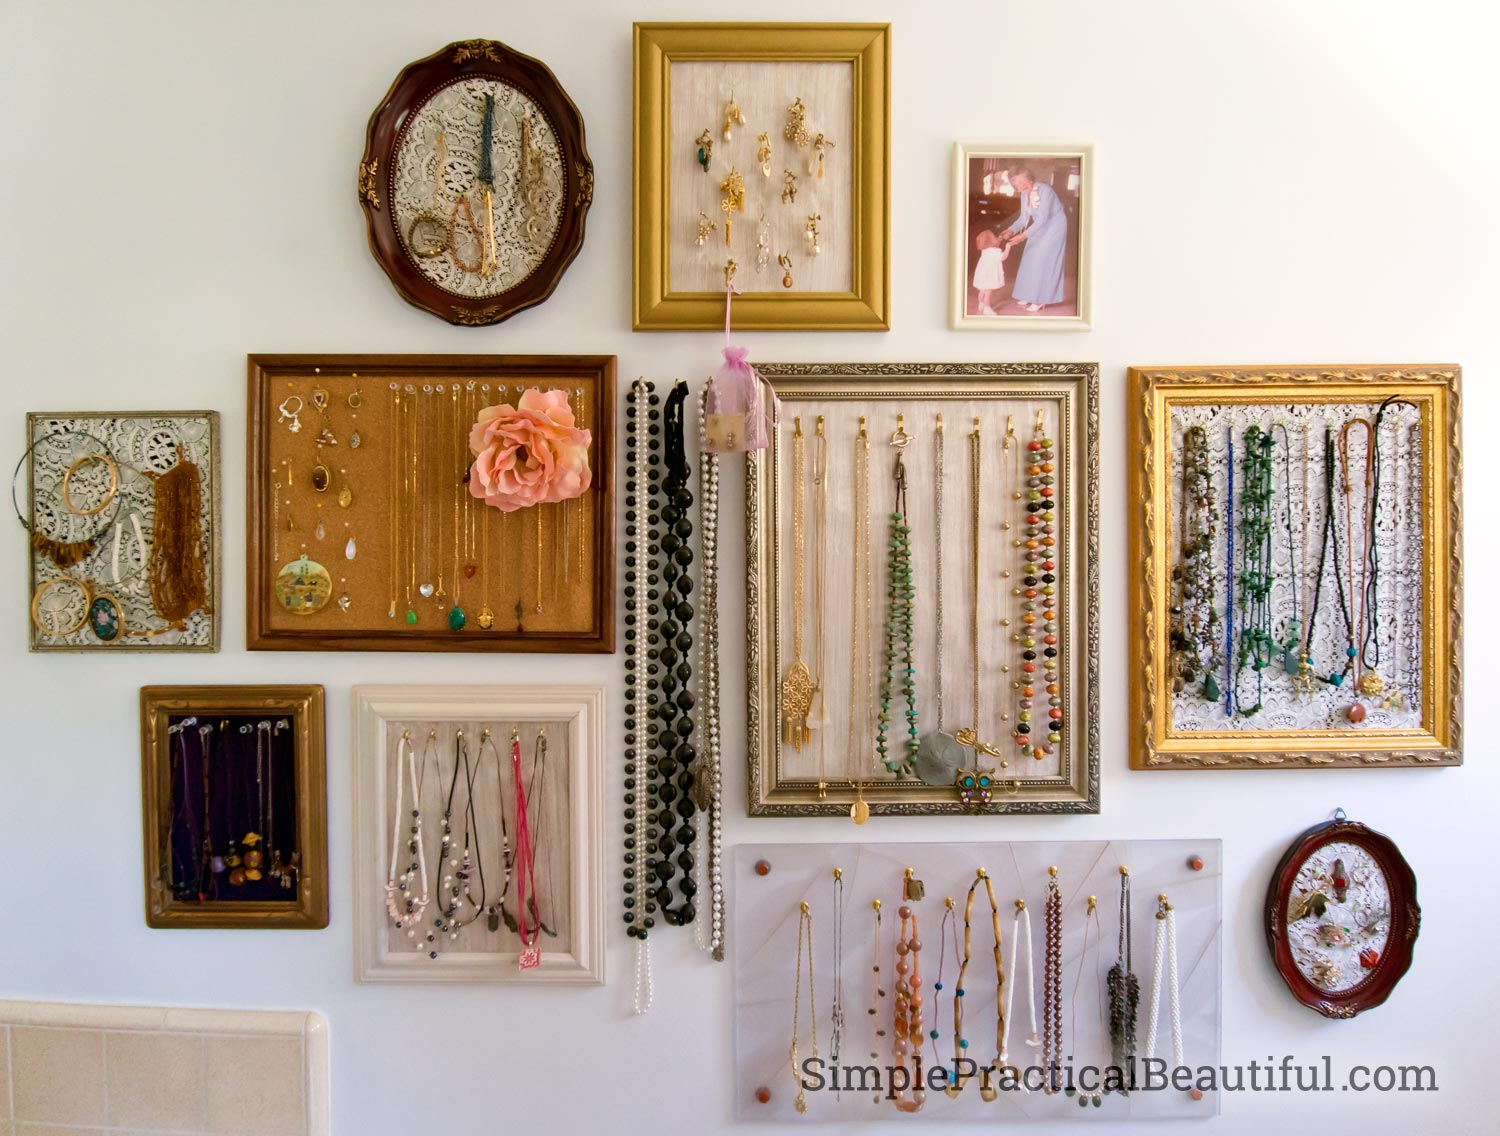 a gallery wall of jewelry